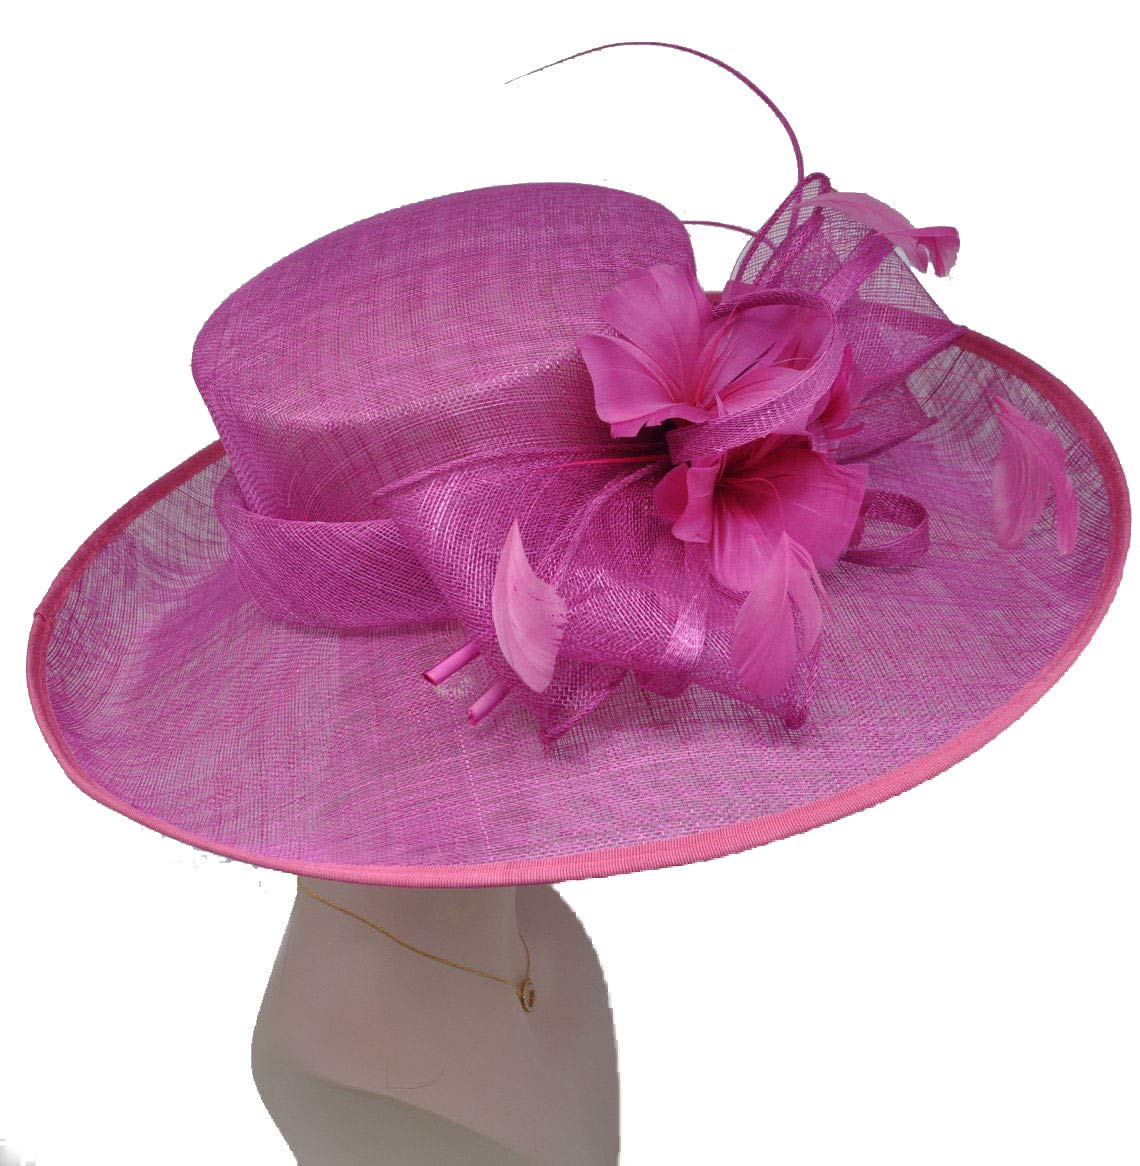 Church Kentucky Derby Carriage Tea Party Wedding Wide Brim Woman's Royal Ascot Hat in Solid Sinamay Hat Hot Pink/Fuschia